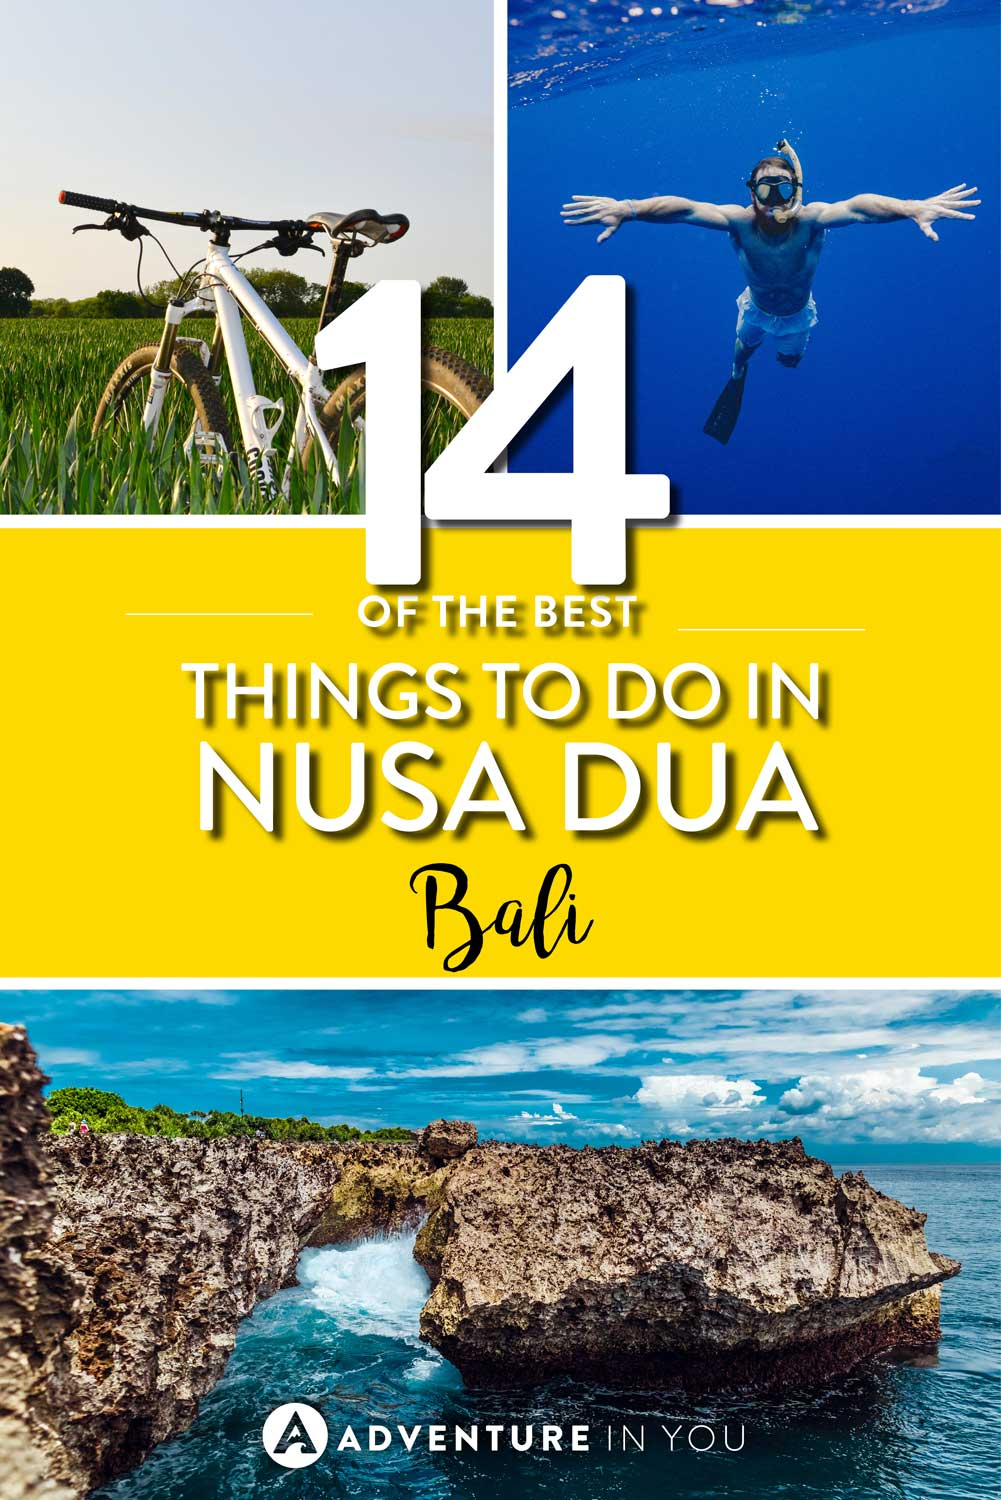 Nusa Dua Bali   Planning a trip to Nusa Dua, Bali? Here are my top recommendations on things to do in Nusa Dua. From exploring the beaches to visiting temples, Nusa Dua has plenty of things to do.